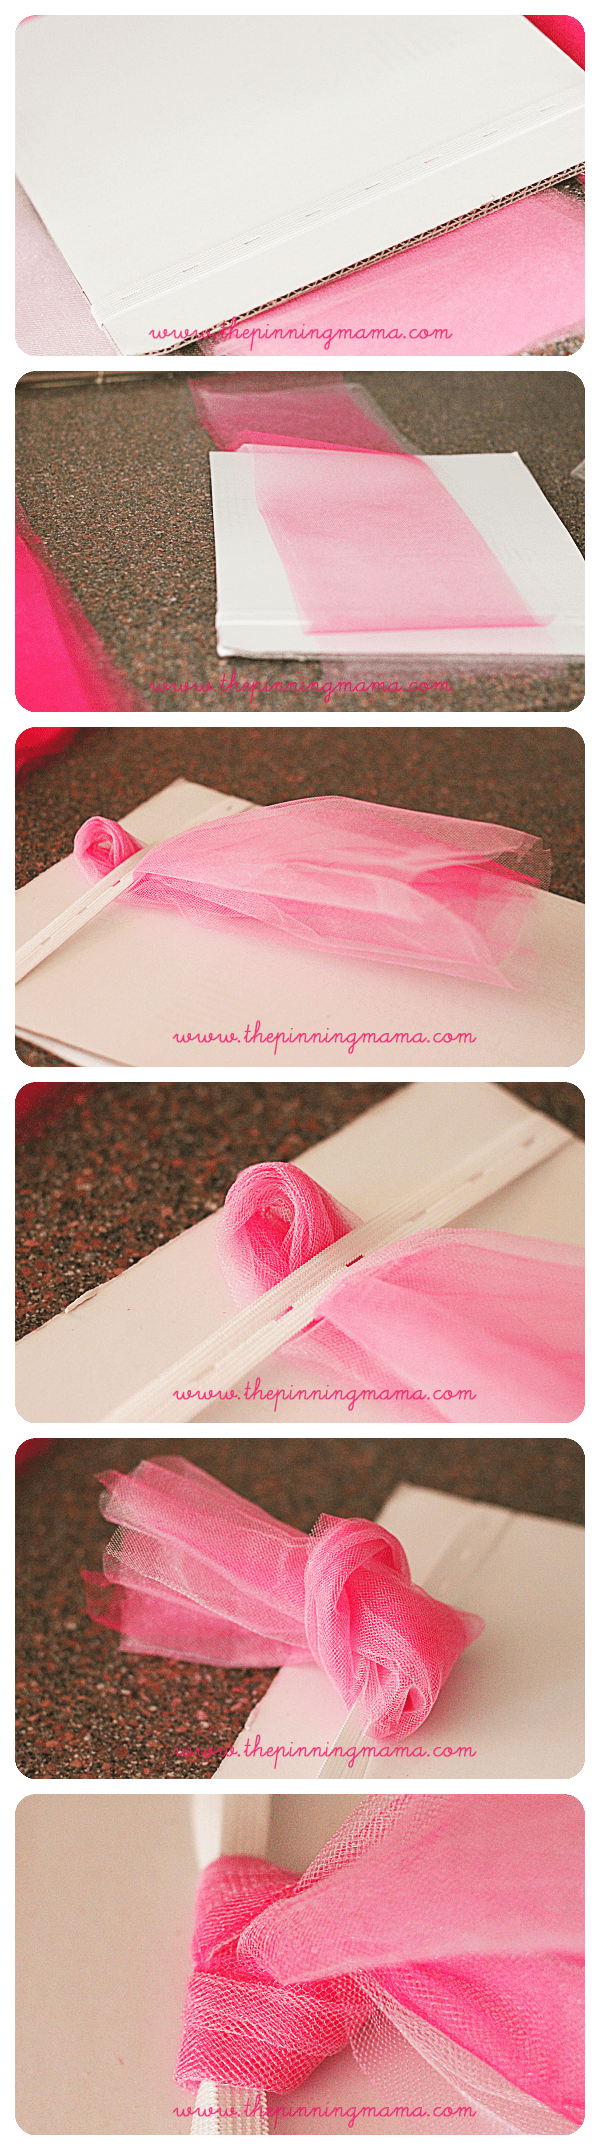 e14a304aae DIY No Sew Tutu for Little Girls • The Pinning Mama